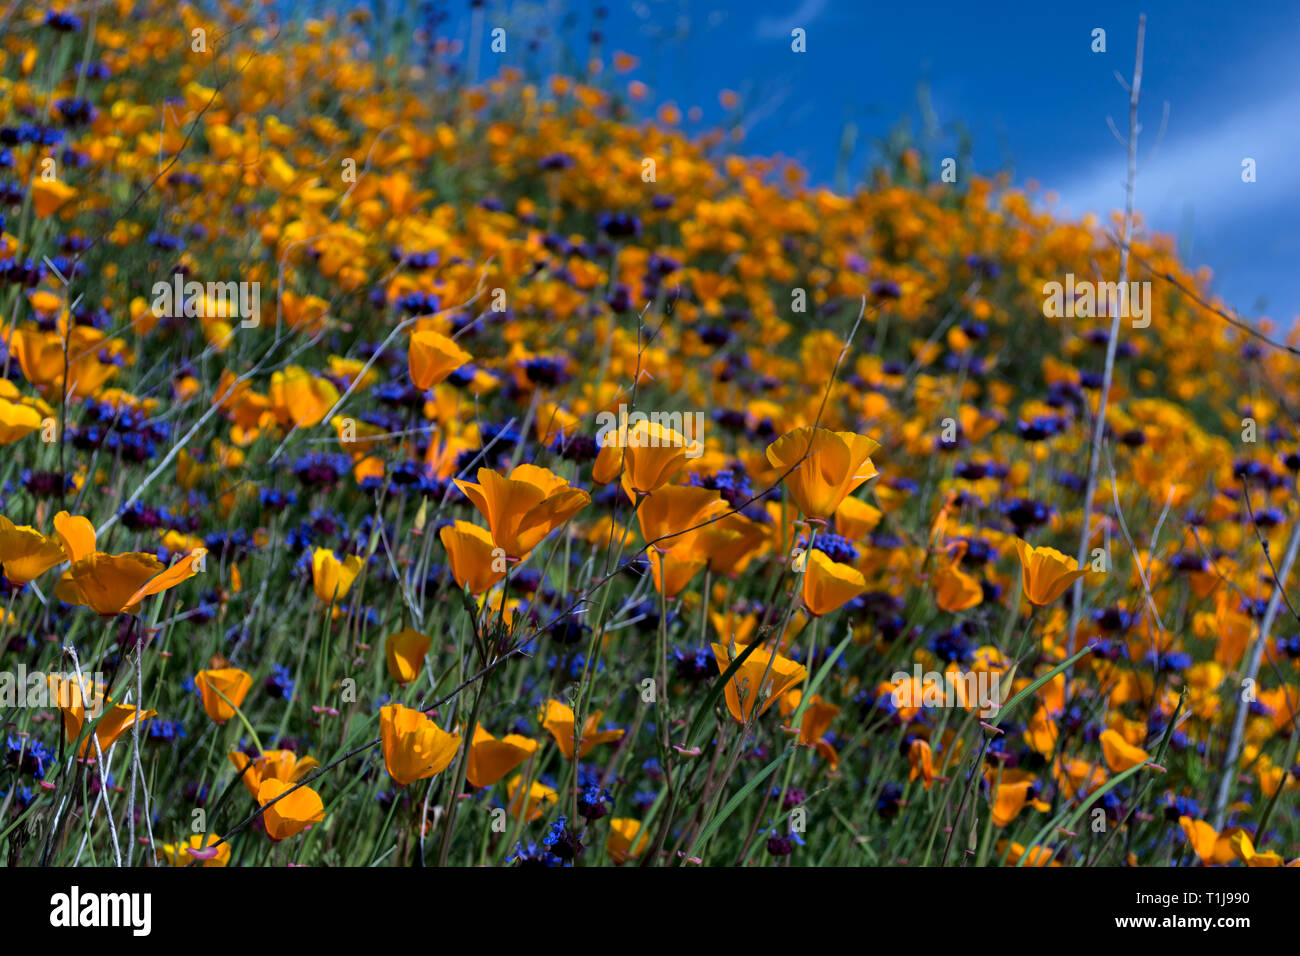 Yellow and purple flowers - Stock Image